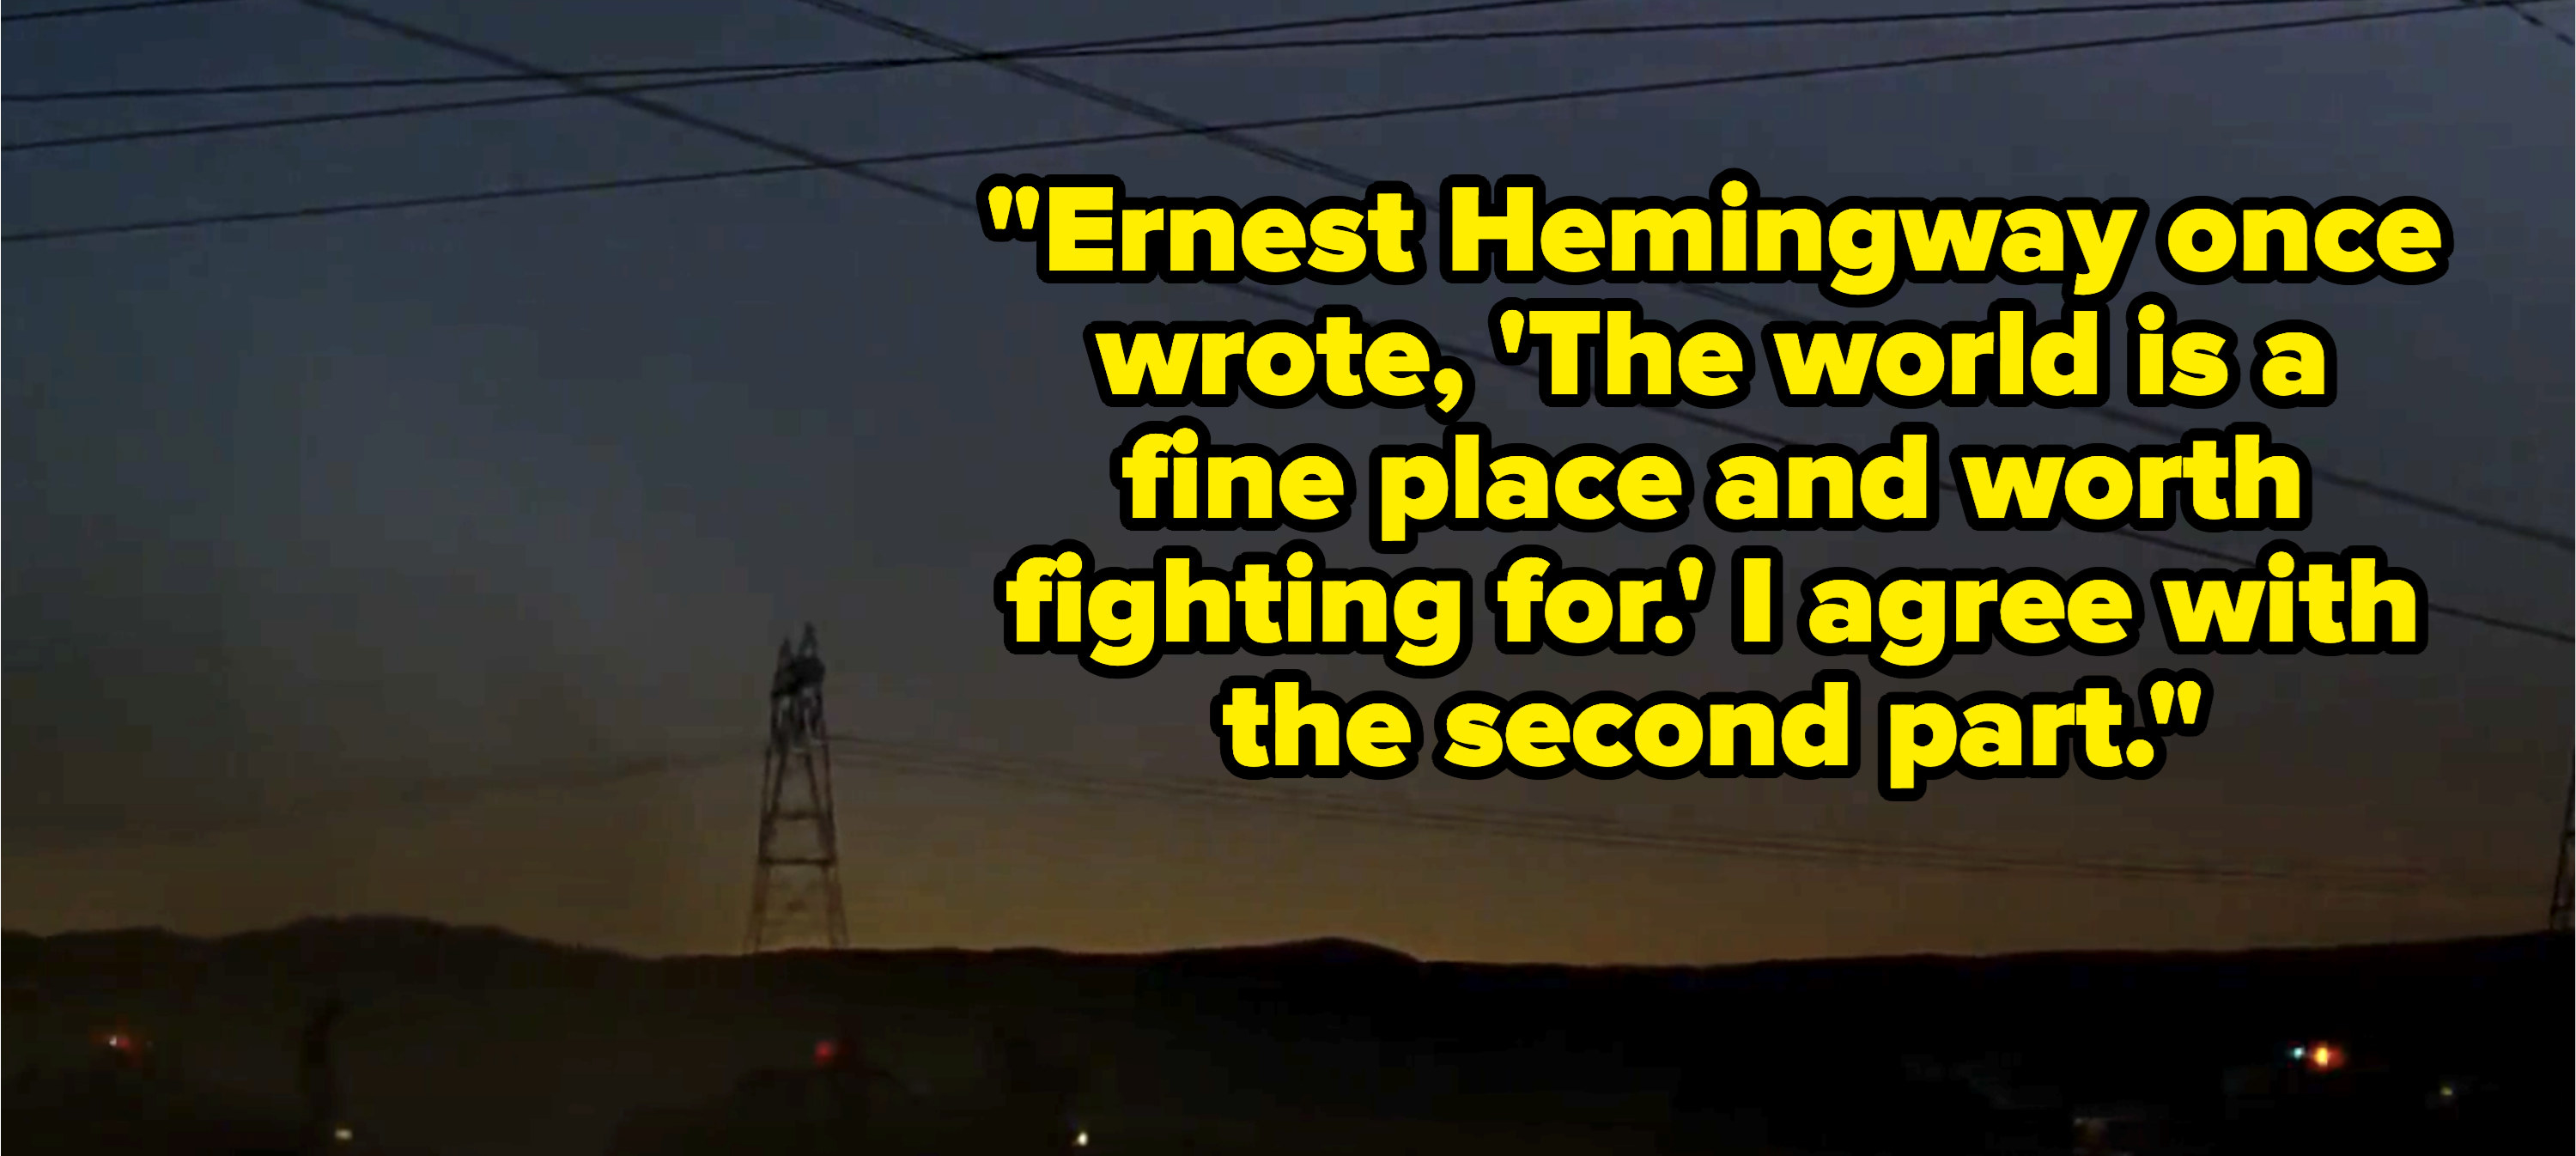 """Somerset says, """"Ernest Hemingway once wrote, 'The world is a fine place and worth fighting for' — I agree with the second part"""""""